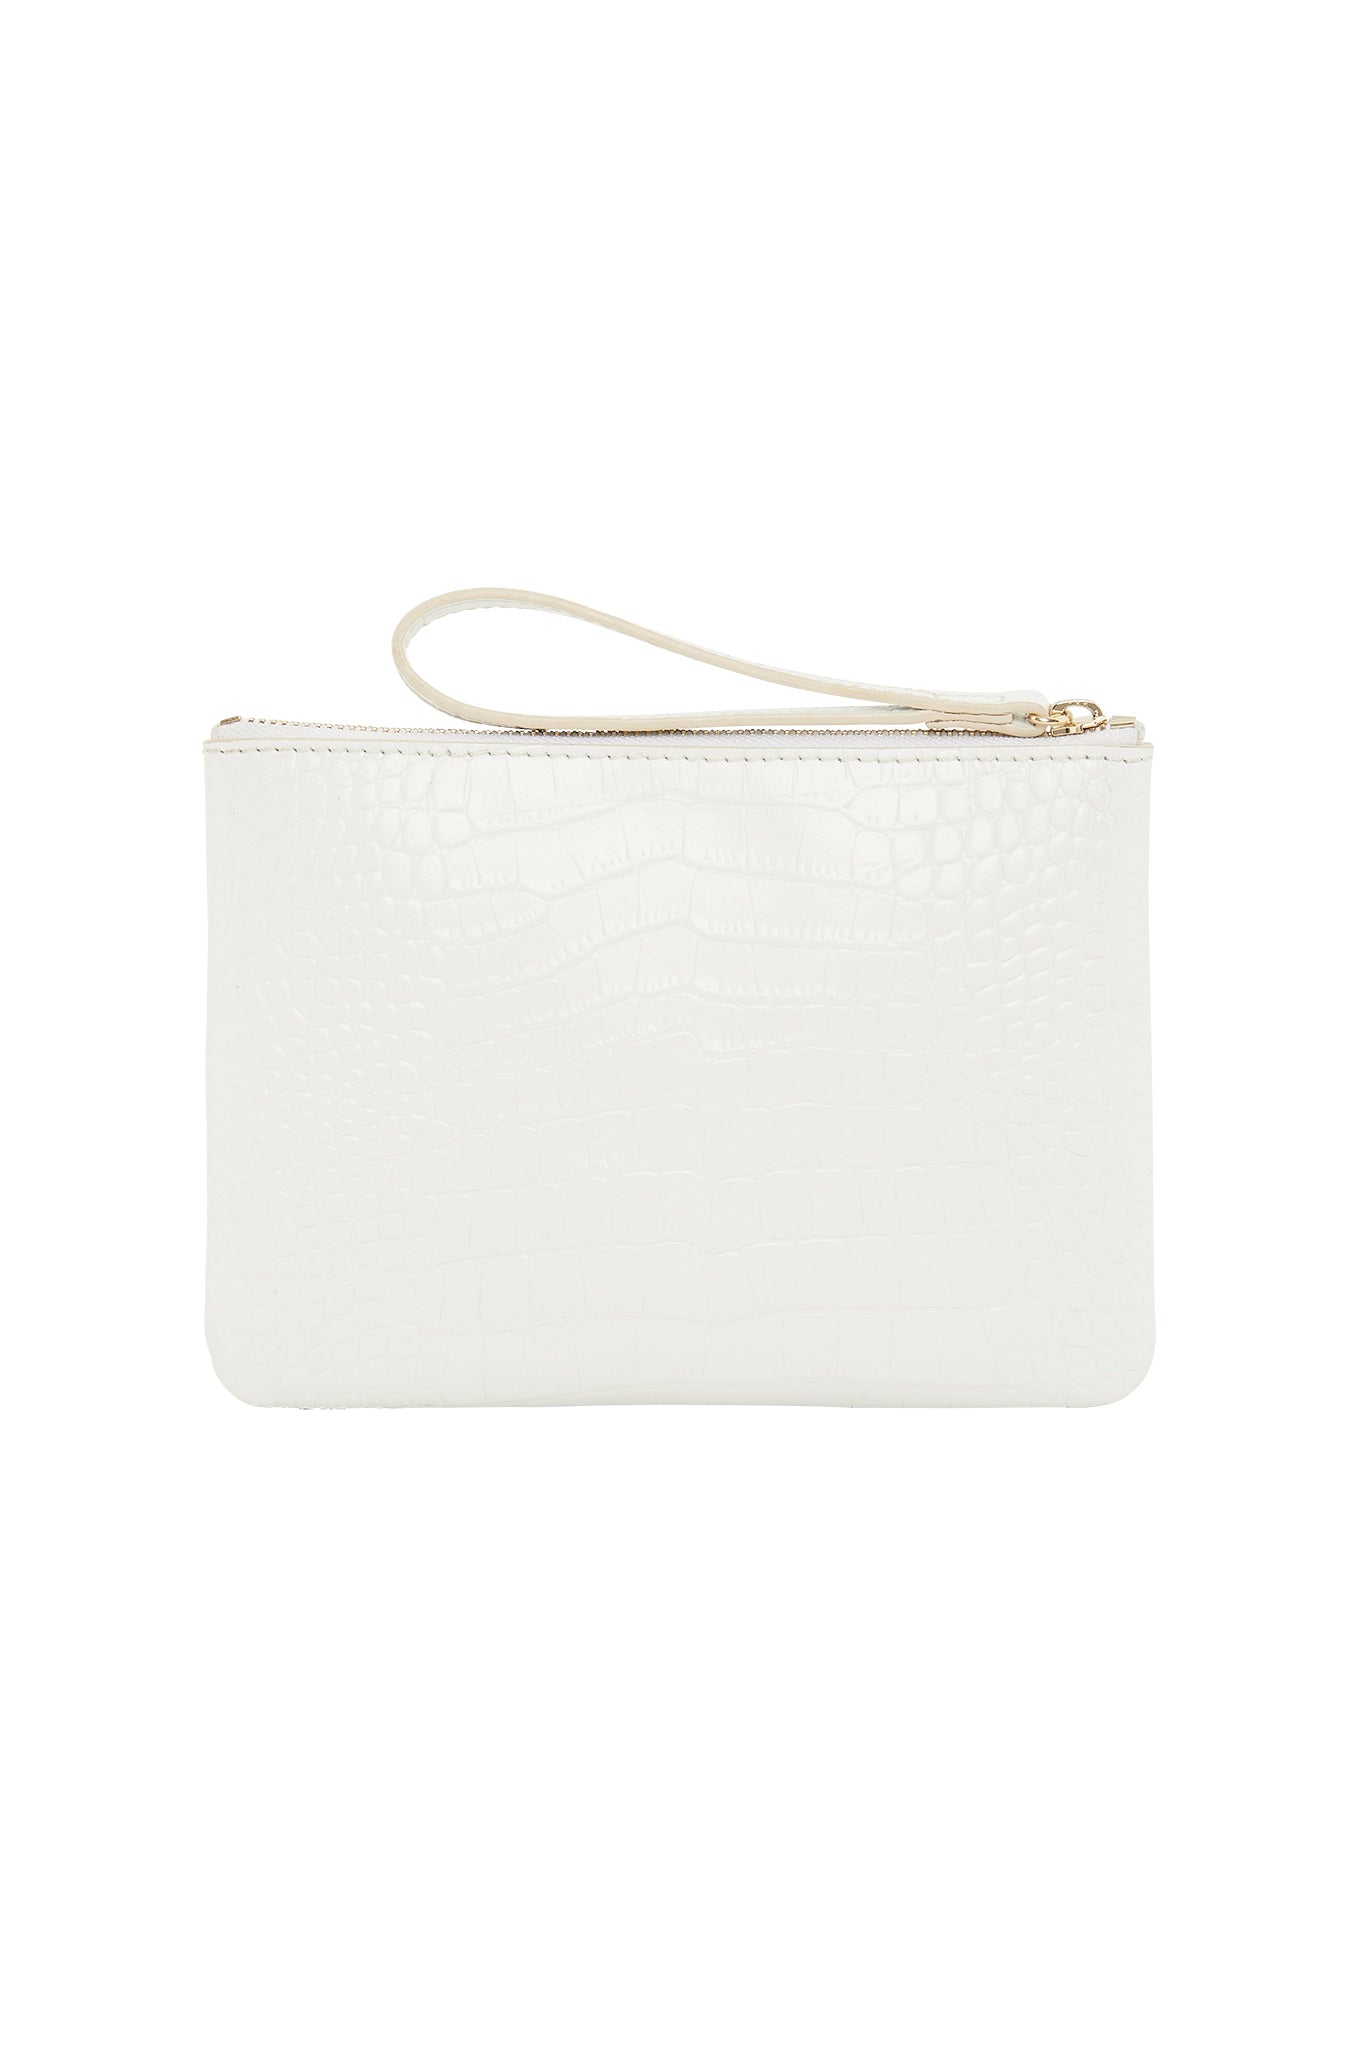 Rigby Wristlet Clutch Product View